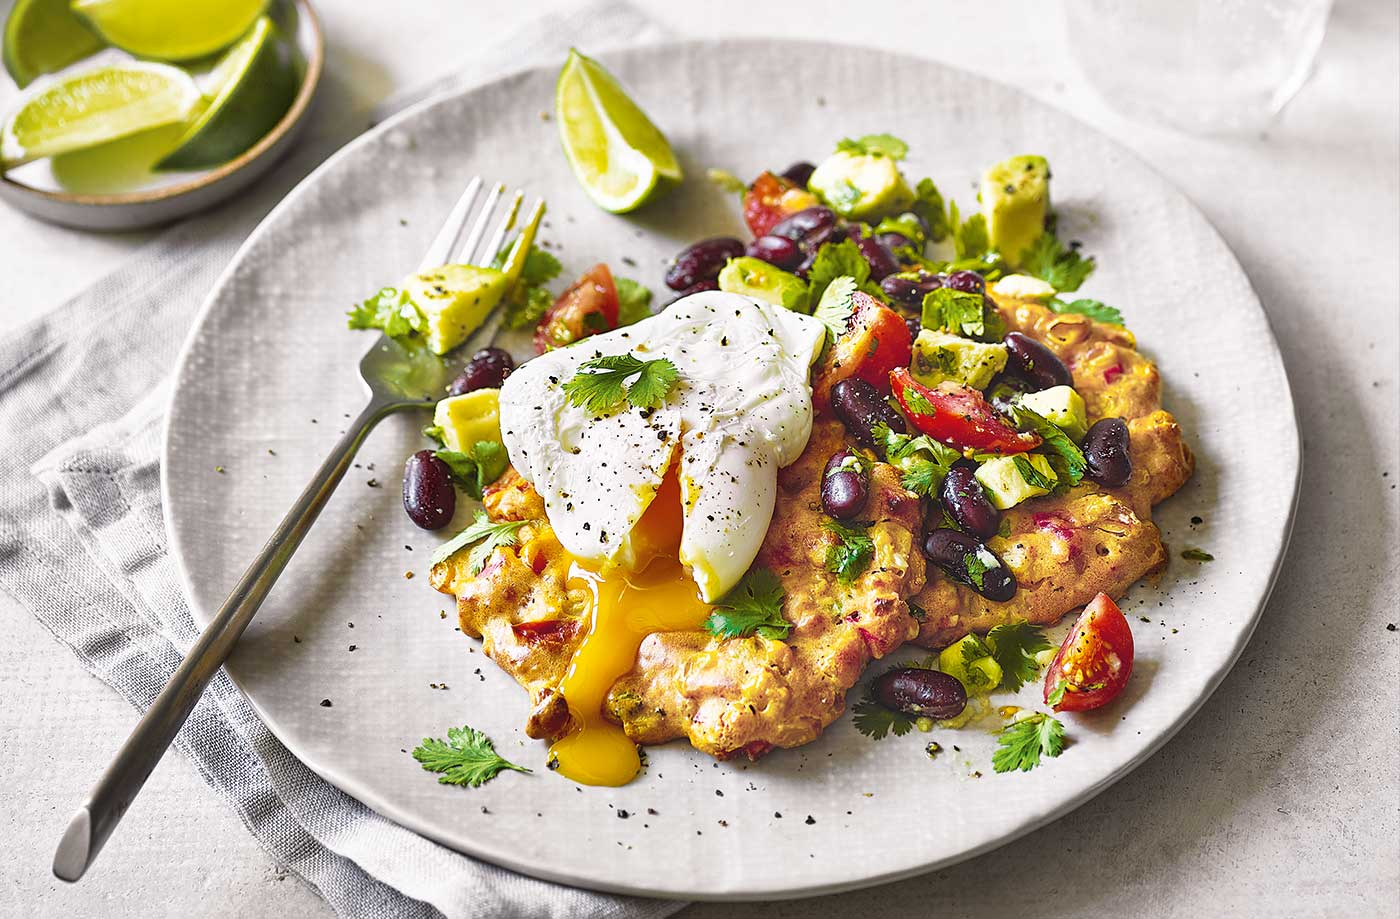 Baked sweetcorn fritters with Mexican-style salad recipe